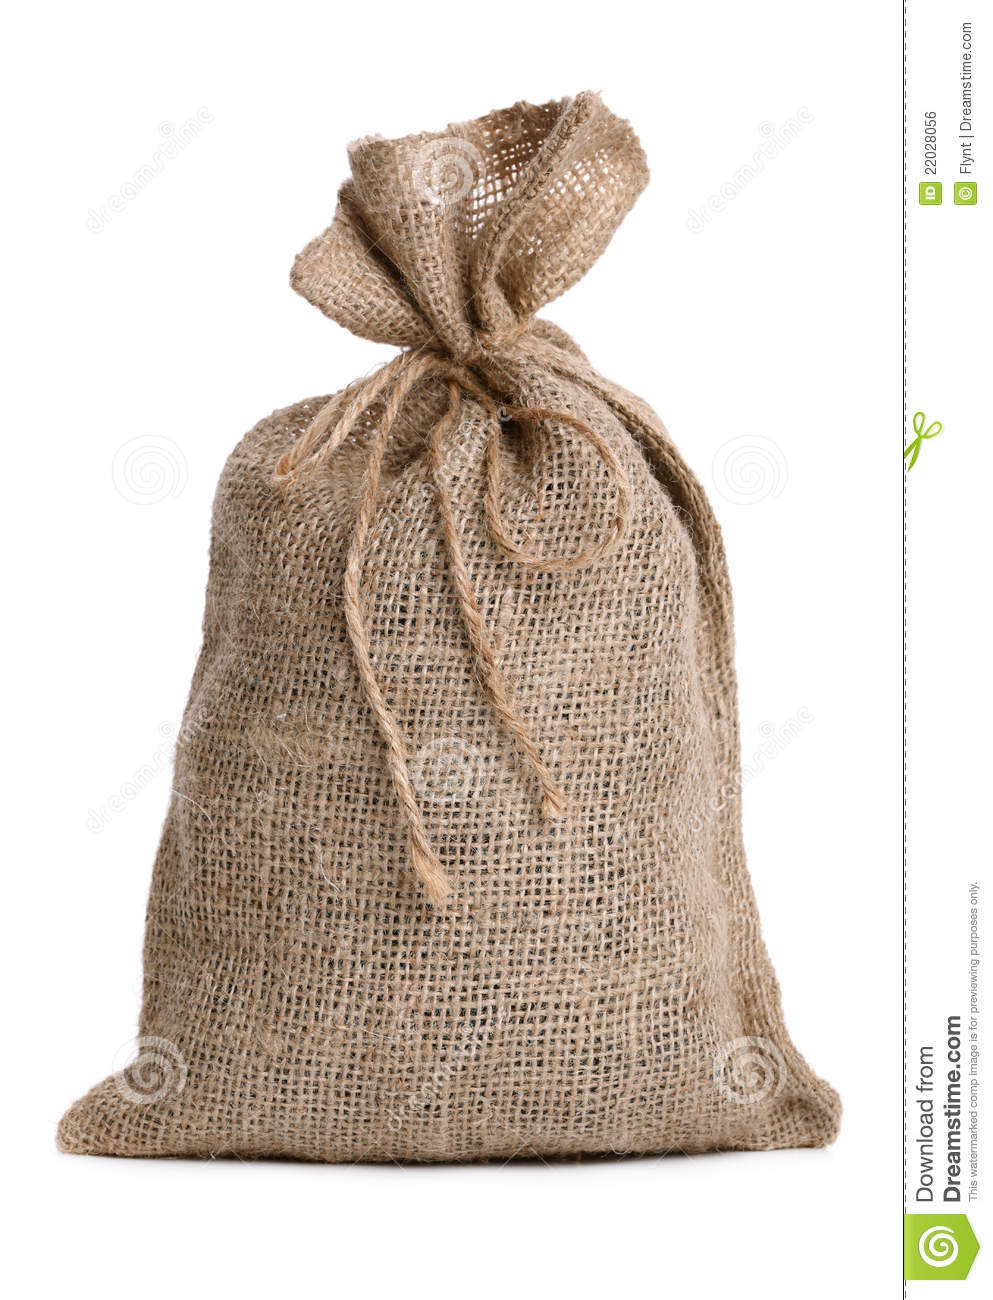 burlap sack royalty free stock image image 22028056 natural resources clipart Examples of Natural Resources